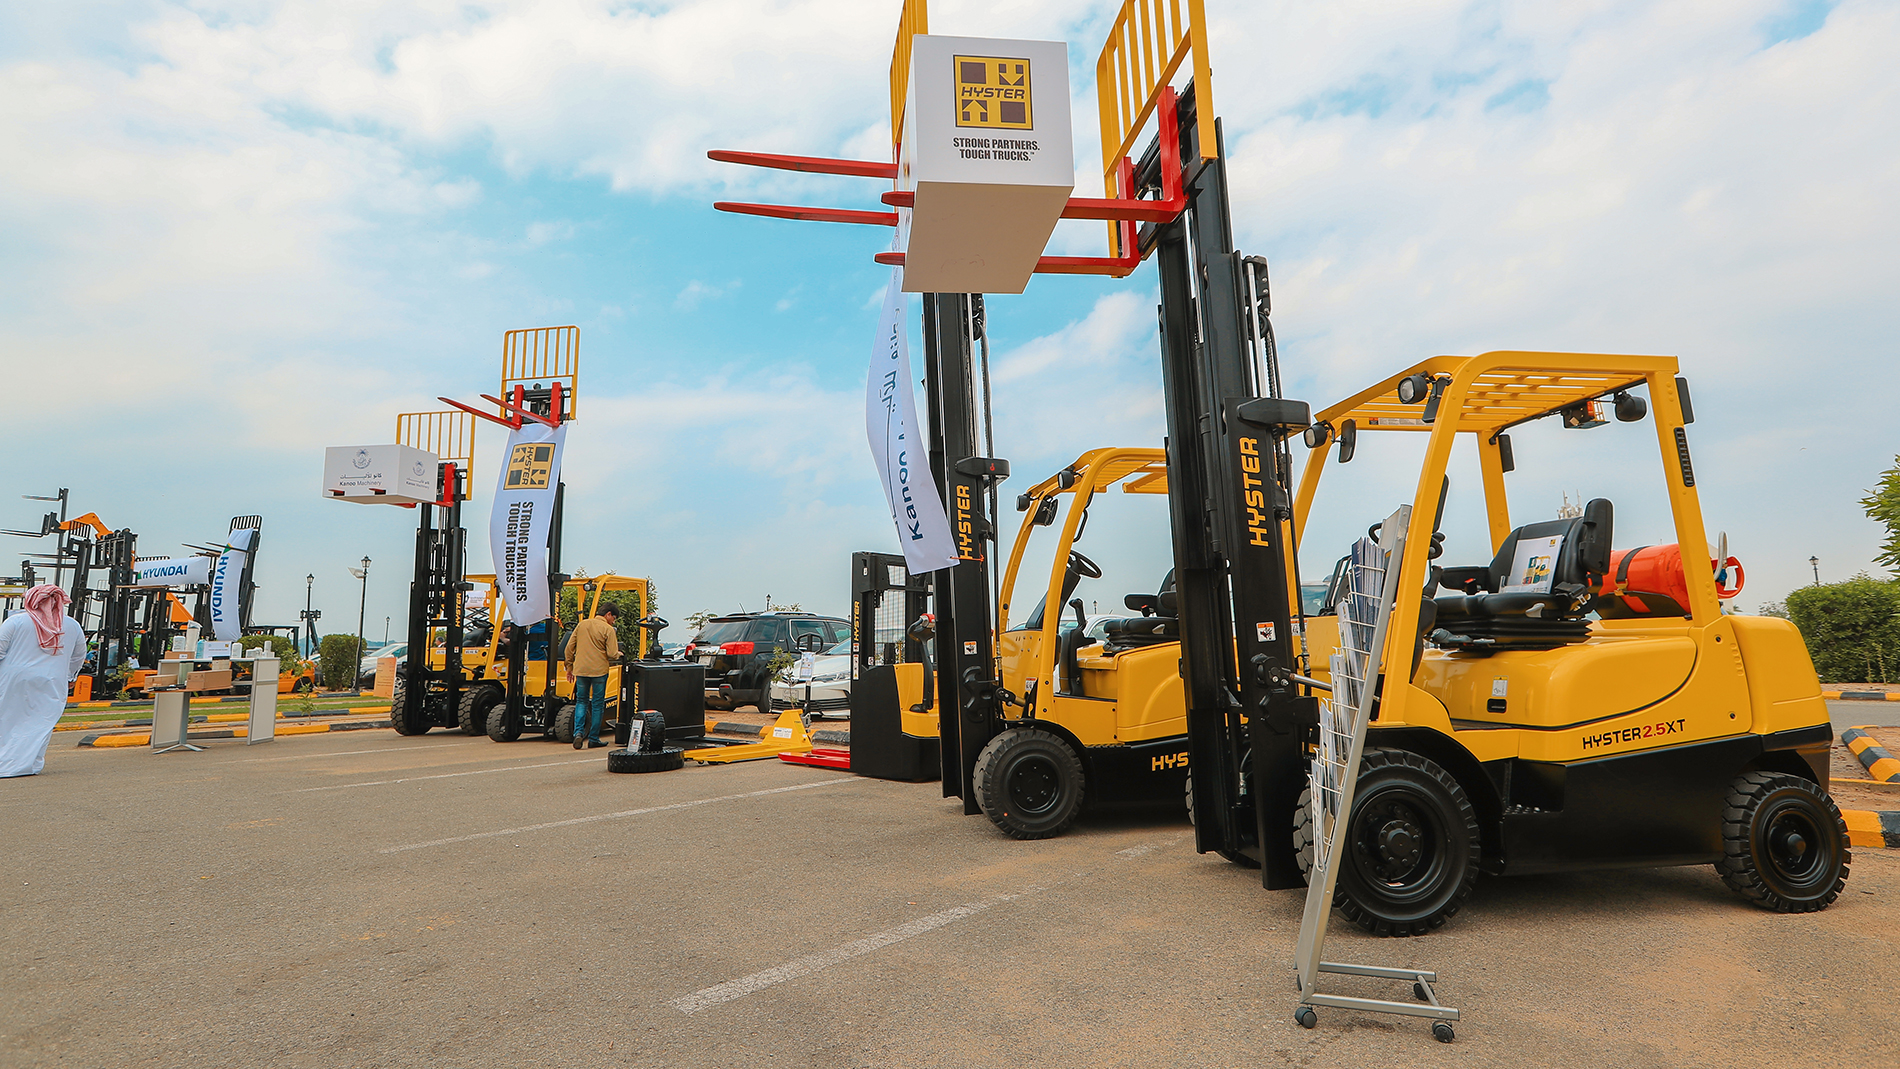 Materials Handling Saudi Arabia - Products